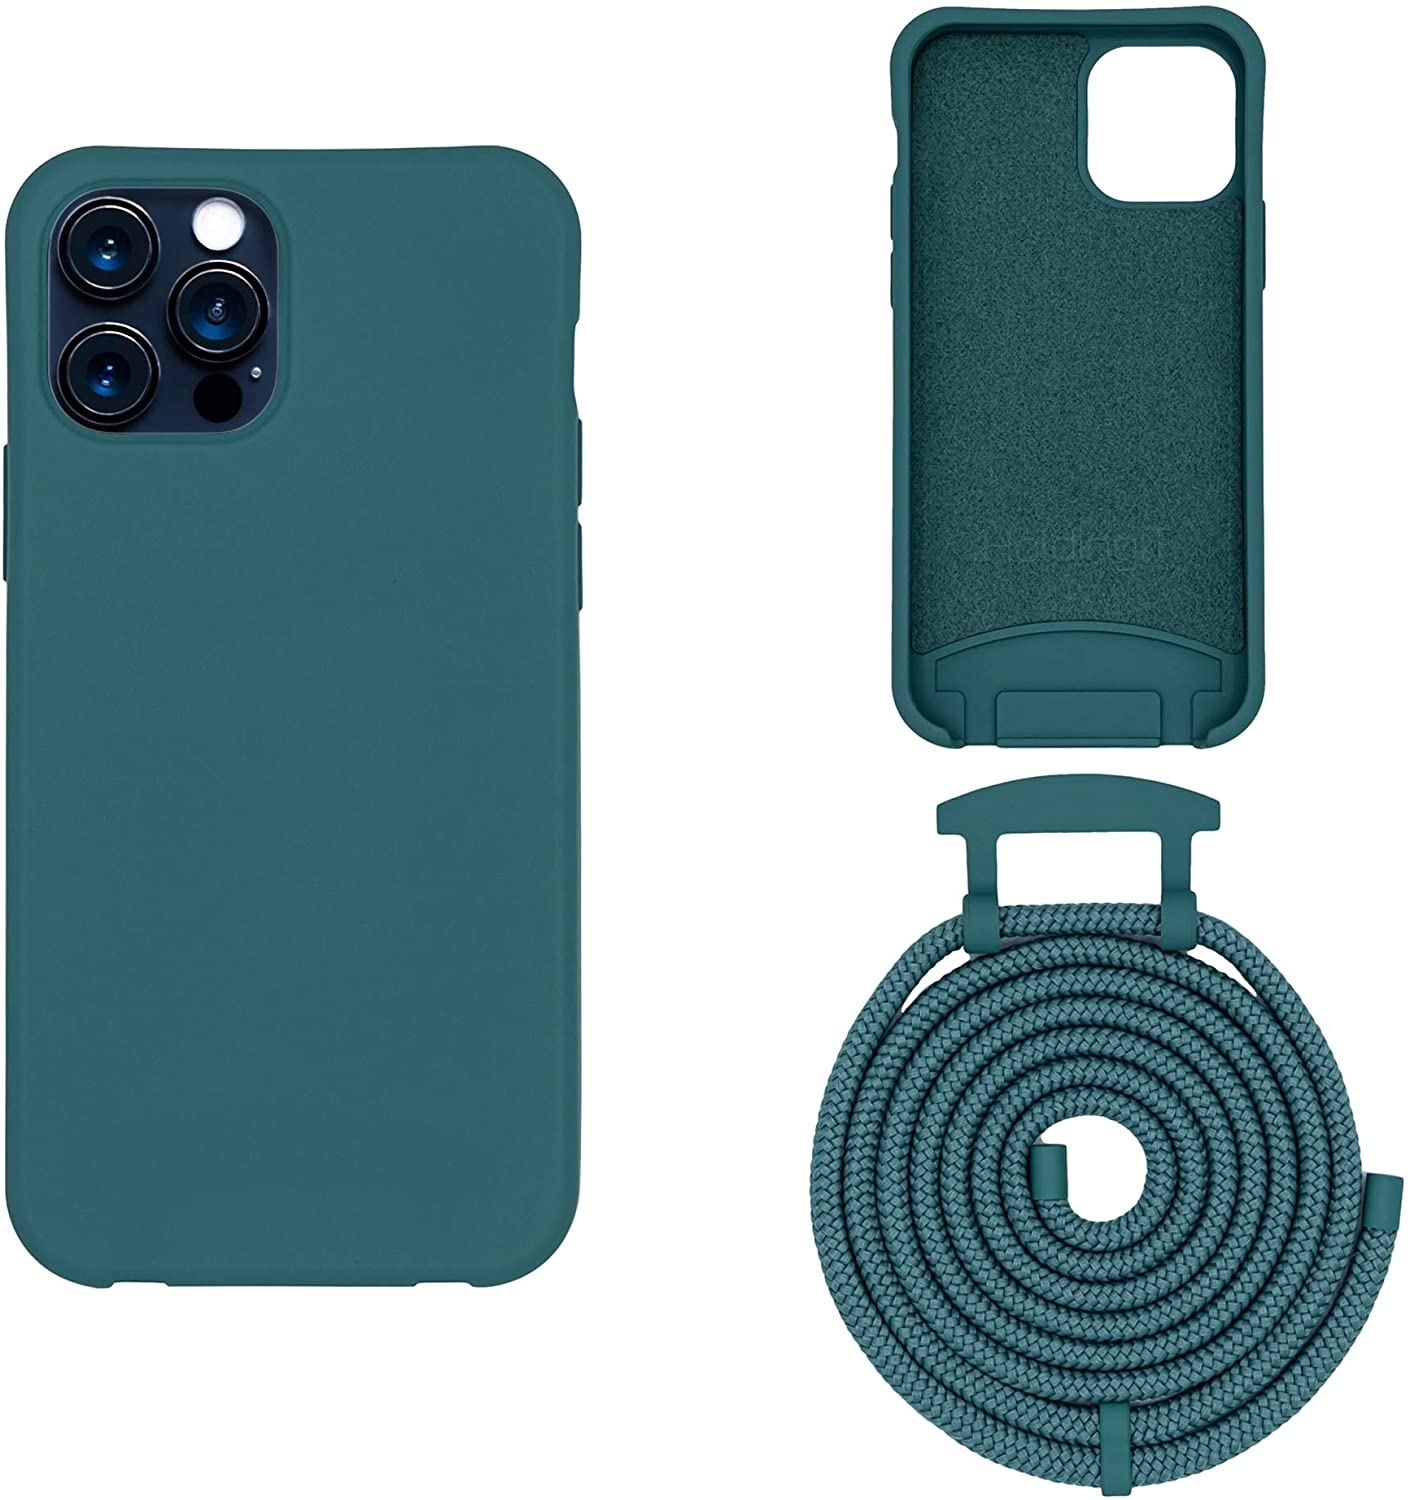 HoldingIT Crossbody Phone Case with Detachable Lanyard Compatible with iPhone 12, 12 Pro, 12 Pro Max, 2-in-1 Hands Free iPhone Cover with Drop Protection, Adjustable Rope